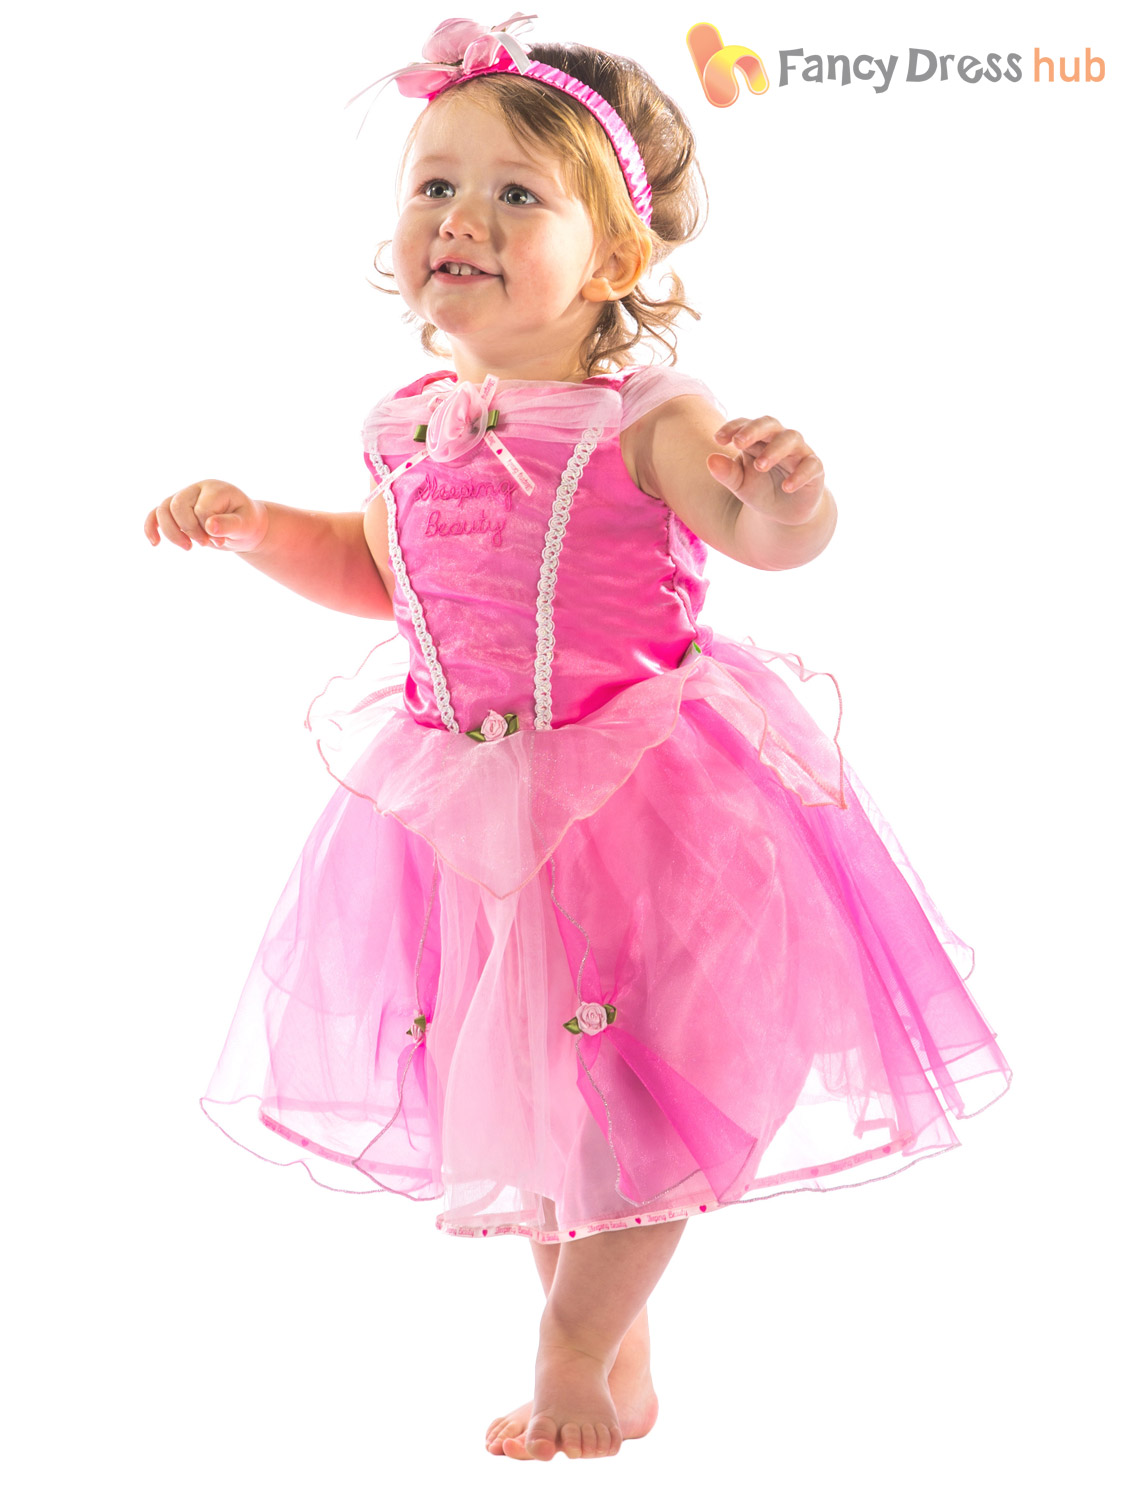 Toddler Princess Costumes. Showing 40 of results that match your query. Search Product Result. Product - Disney Princess Snow White Classic Toddler Halloween Costume. Product - Koala Kids Toddler Girls Pink Fairy Princess Costume with .